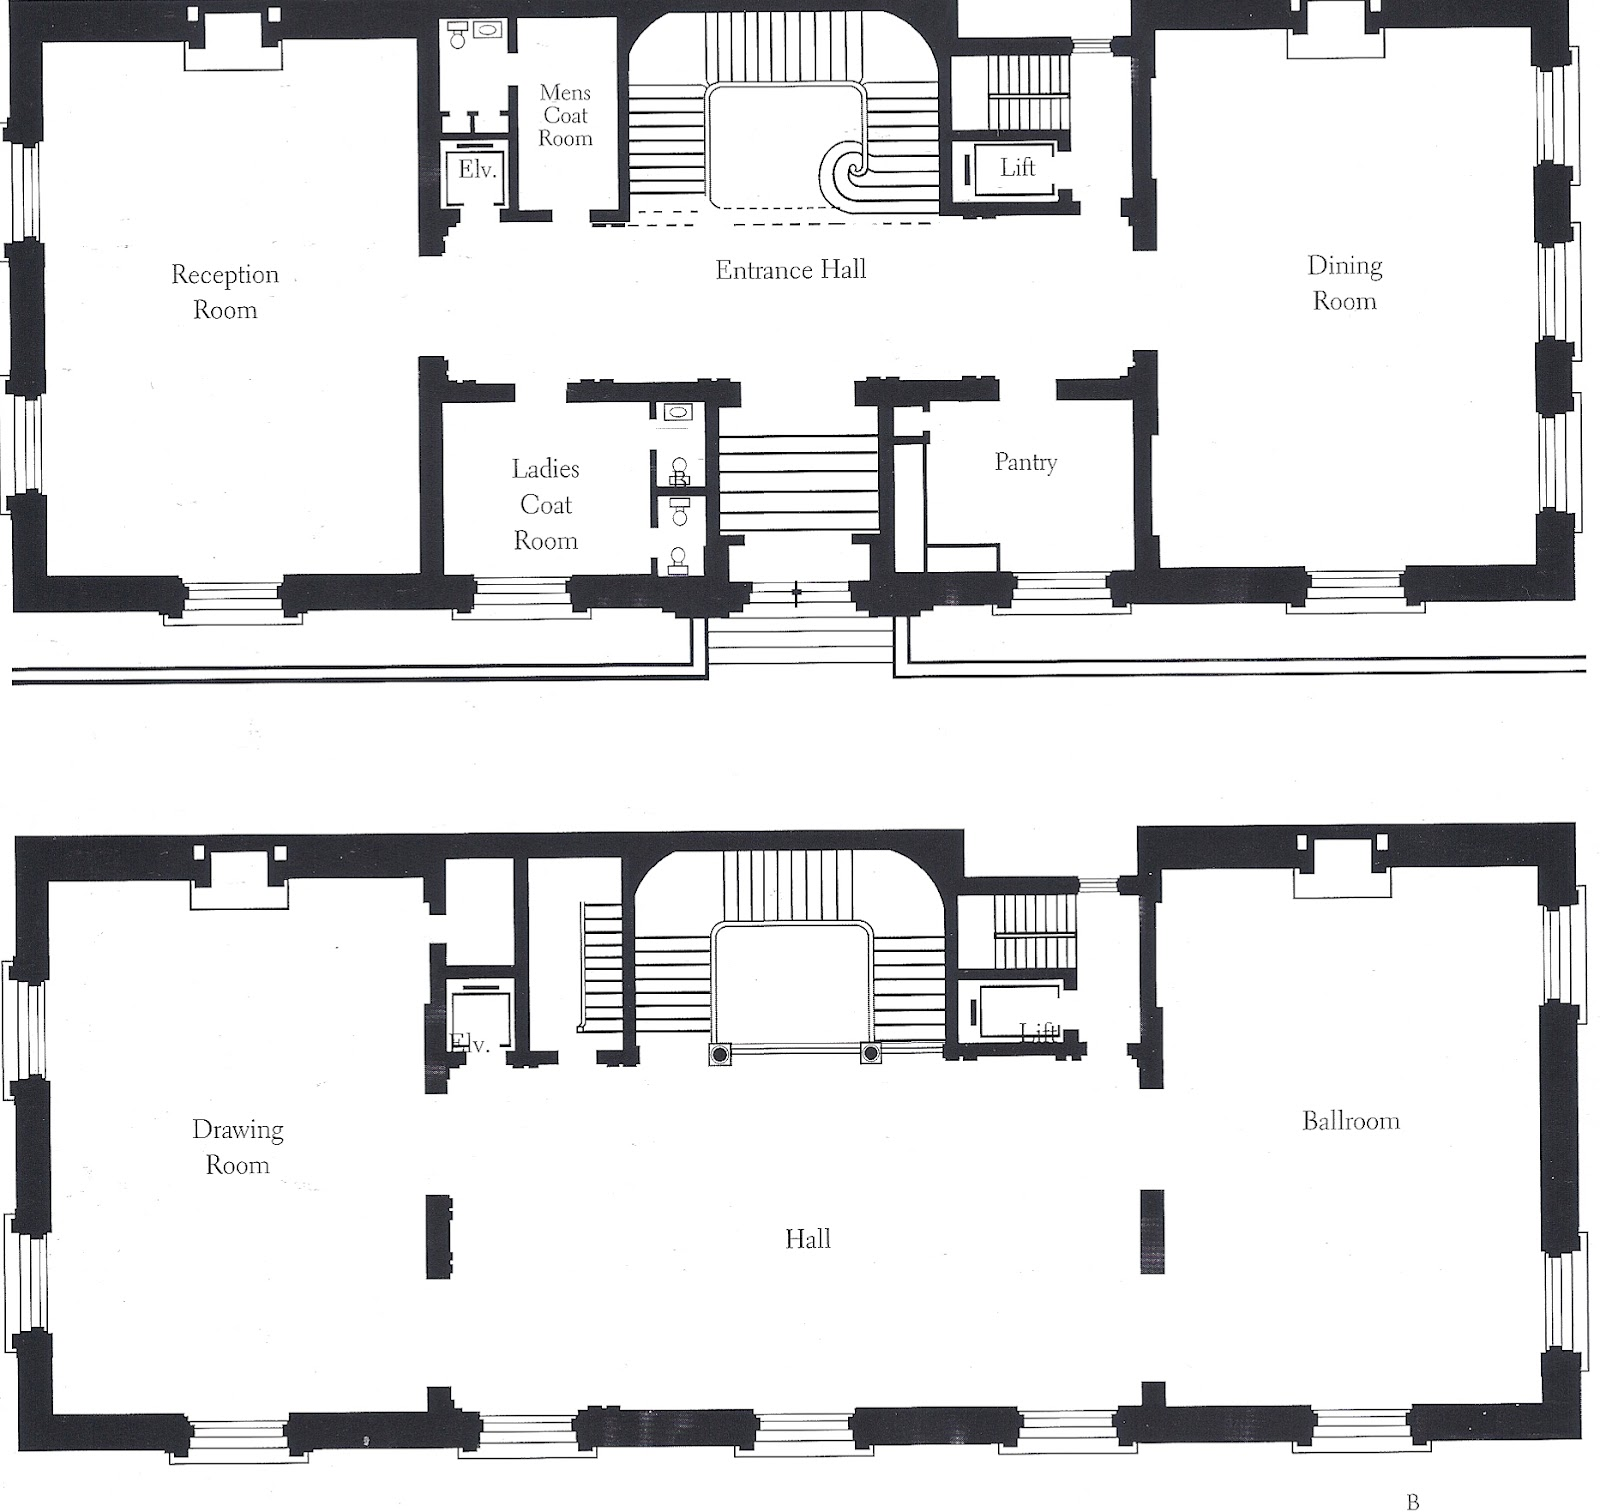 Mansion Floor Plans: The Gilded Age Era: George J Gould Mansion Fifth Avenue